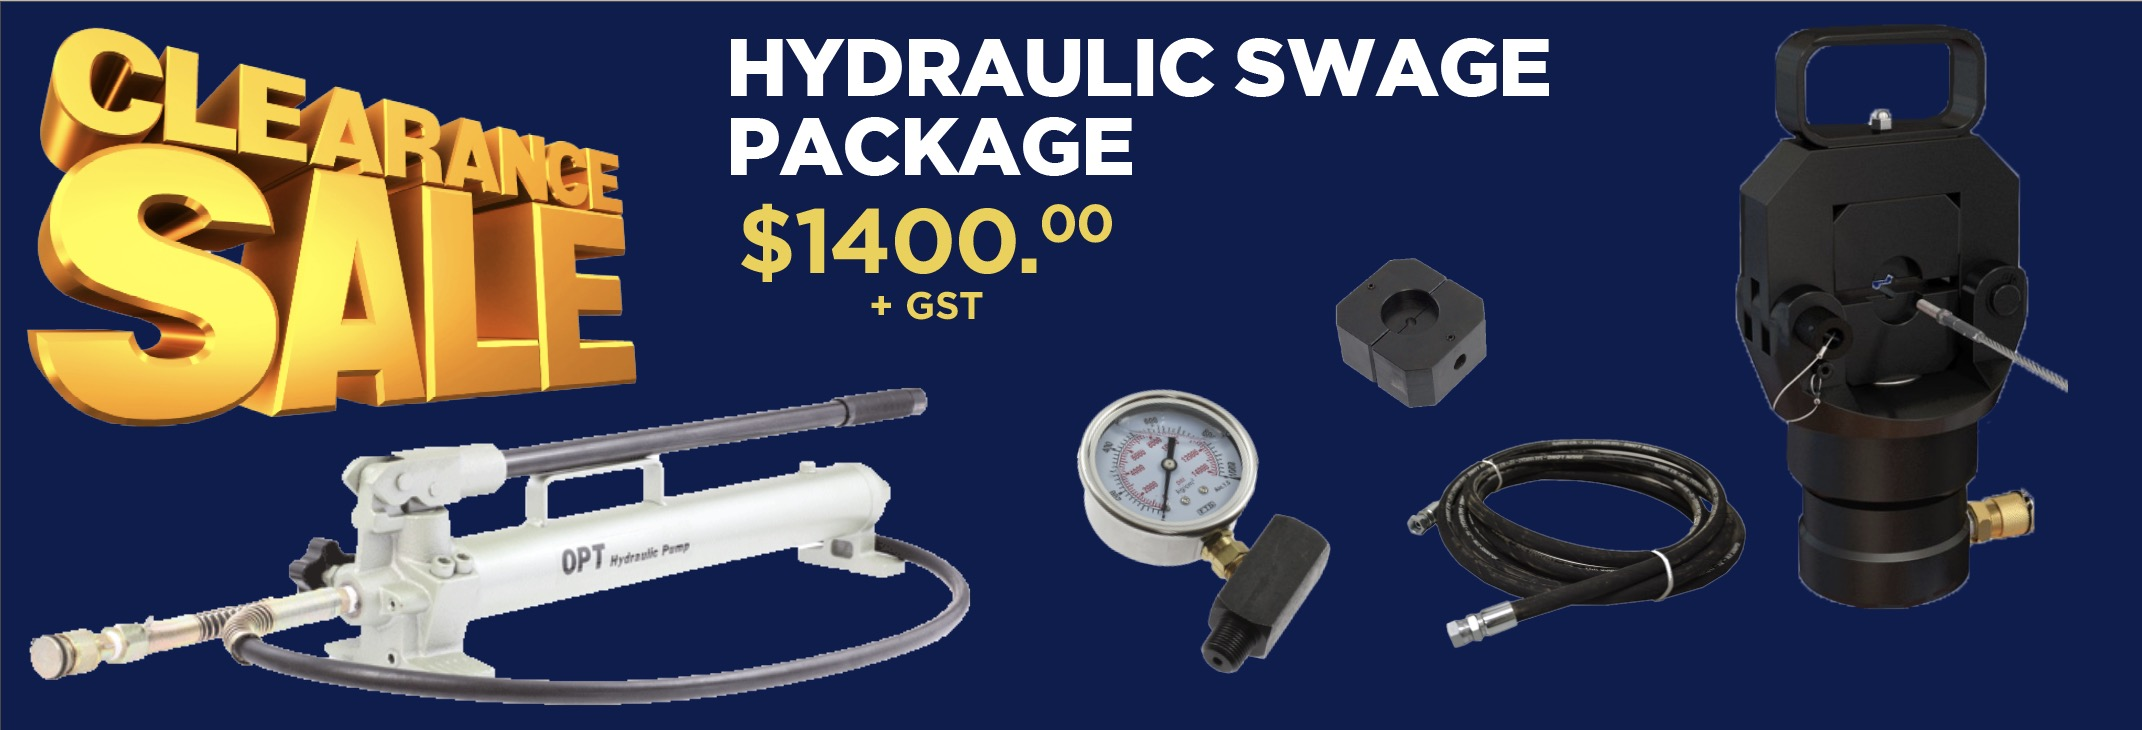 hydraulic=swage=package